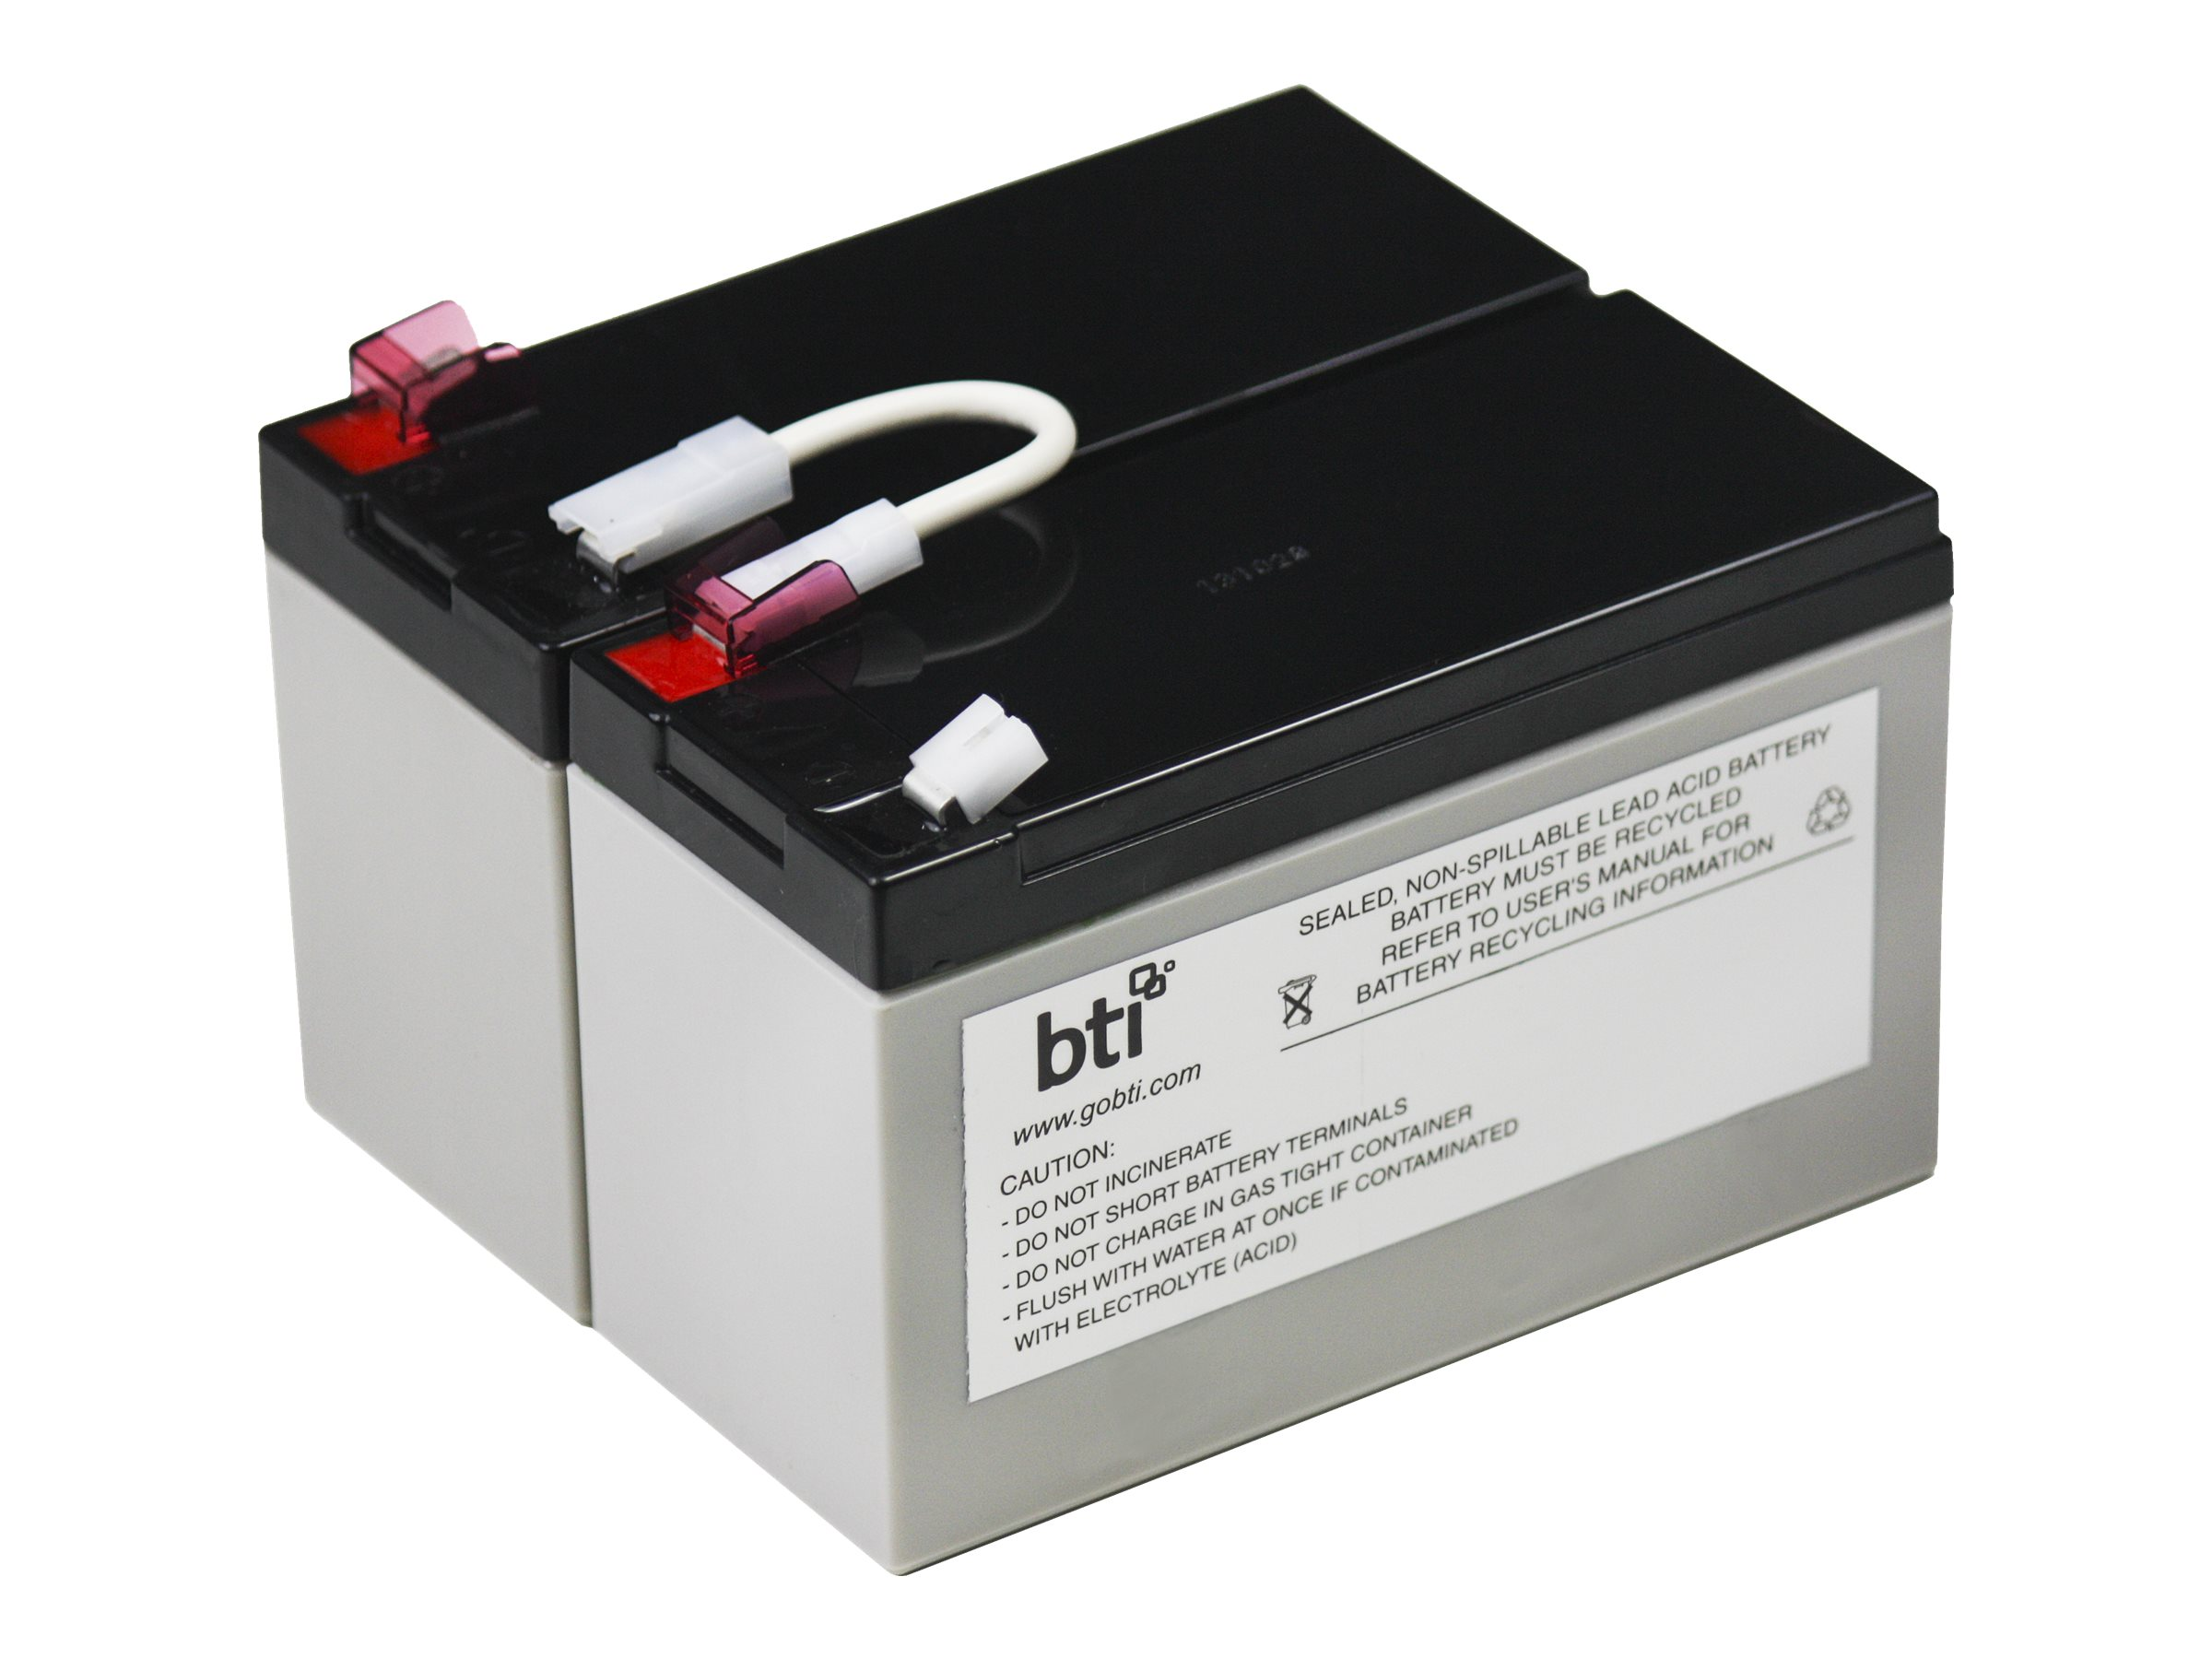 BTI Replacement Battery Cartridge APCRBC109 for BX1300LCD UPS, APCRBC109-SLA109